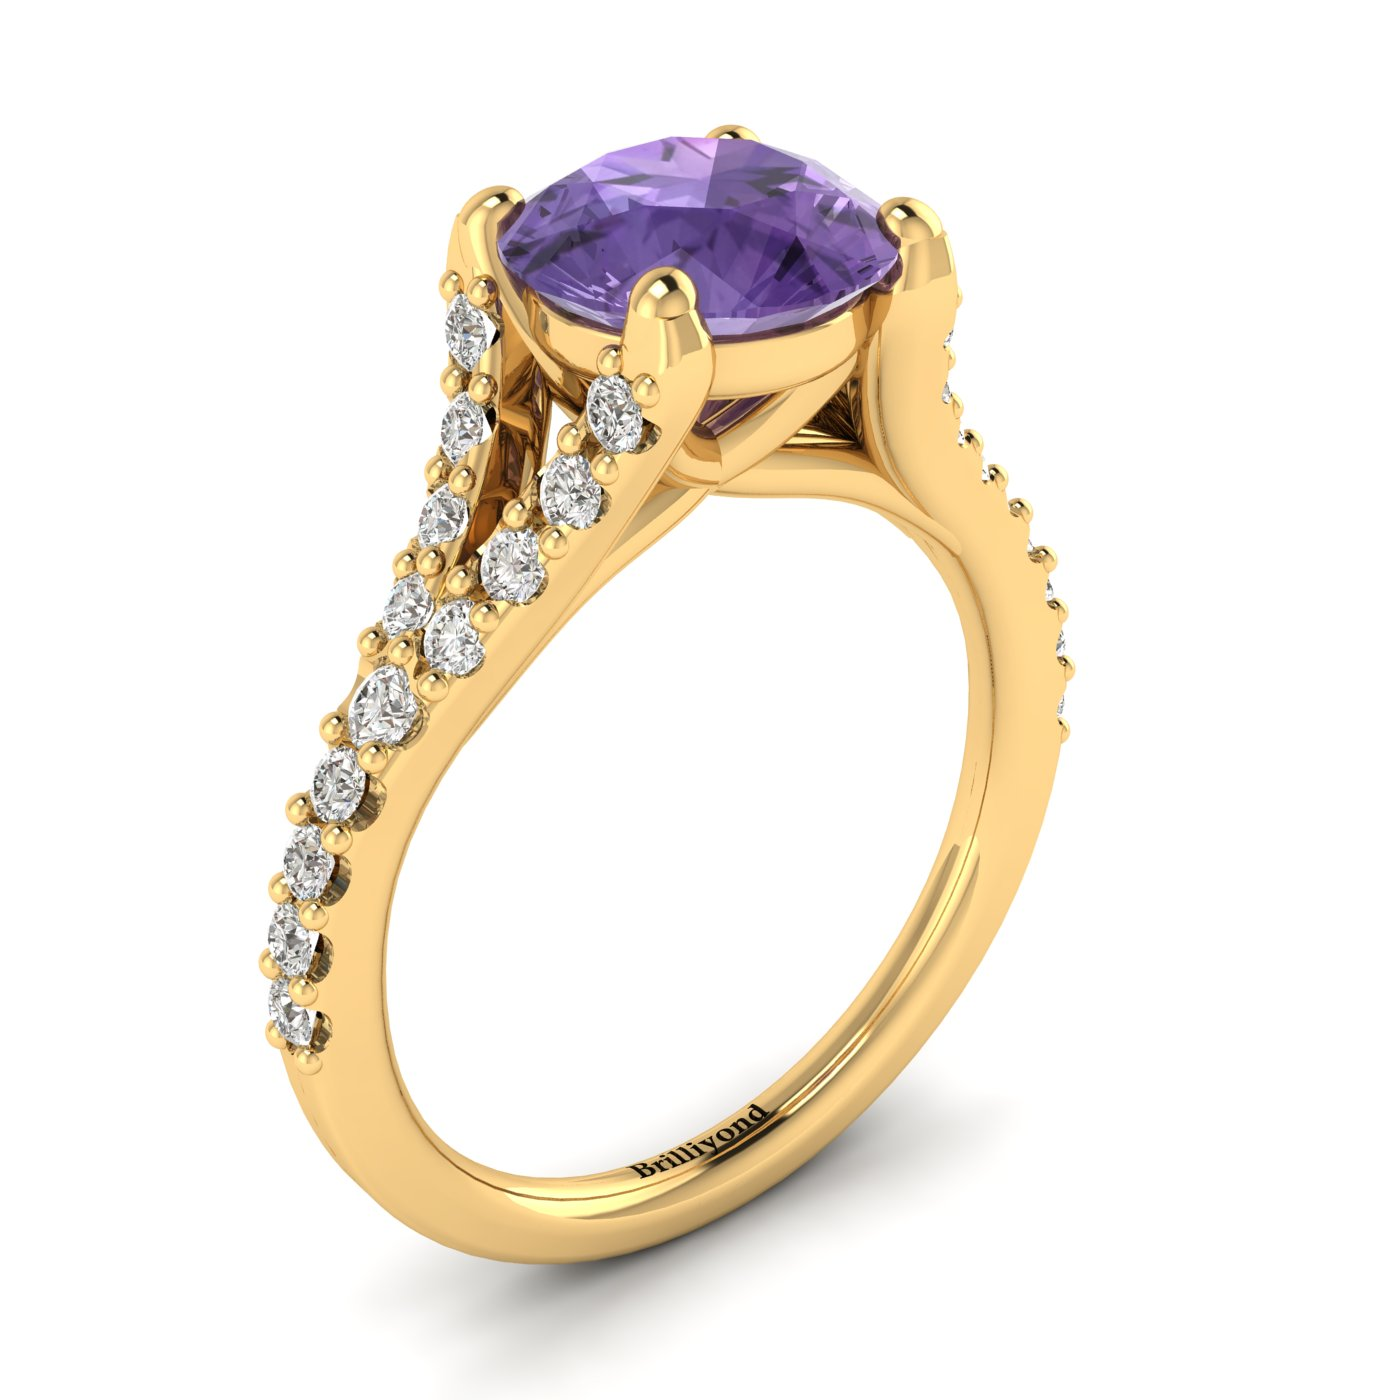 A Juliana inspired yellow gold engagement ring with 26 white cubic zirconia accent stones.